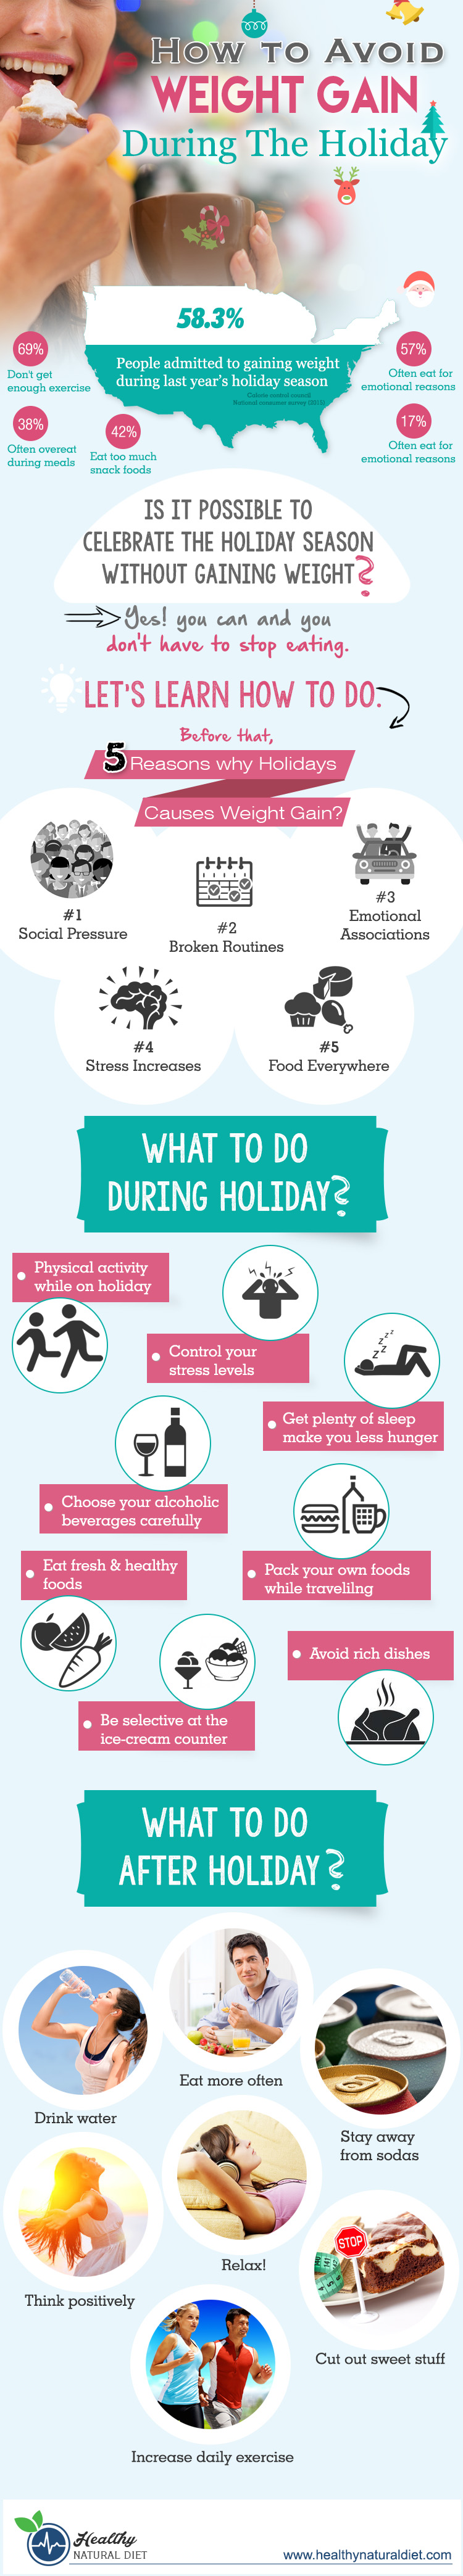 How To Avoid Holiday Weight Gain [Infographic]